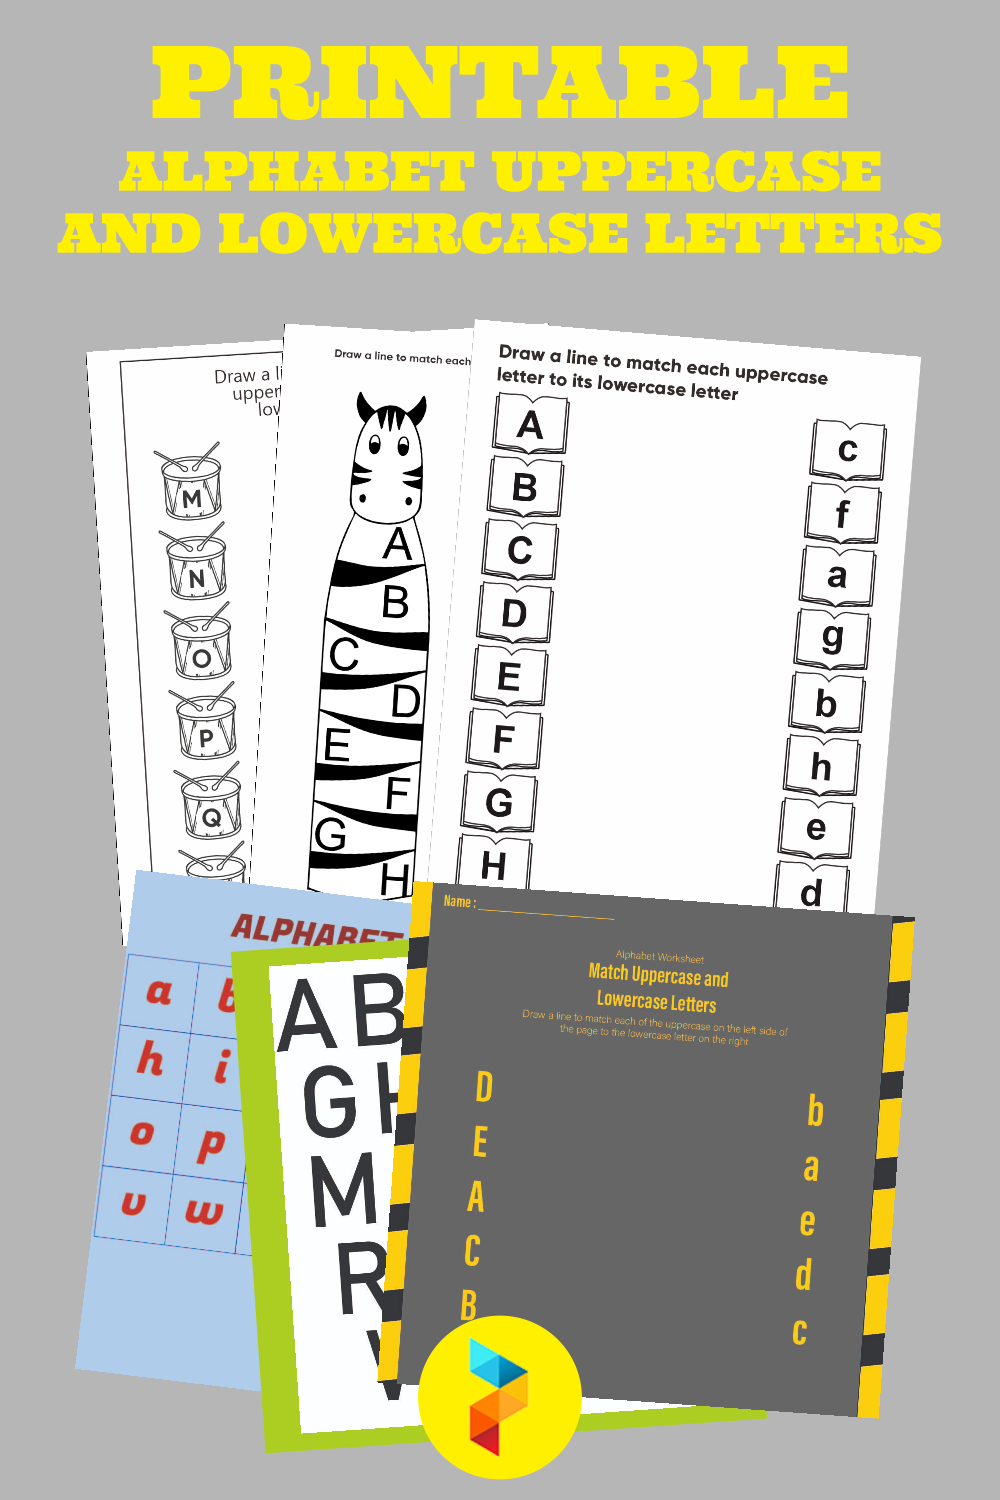 Printable Alphabet Uppercase And Lowercase Letters